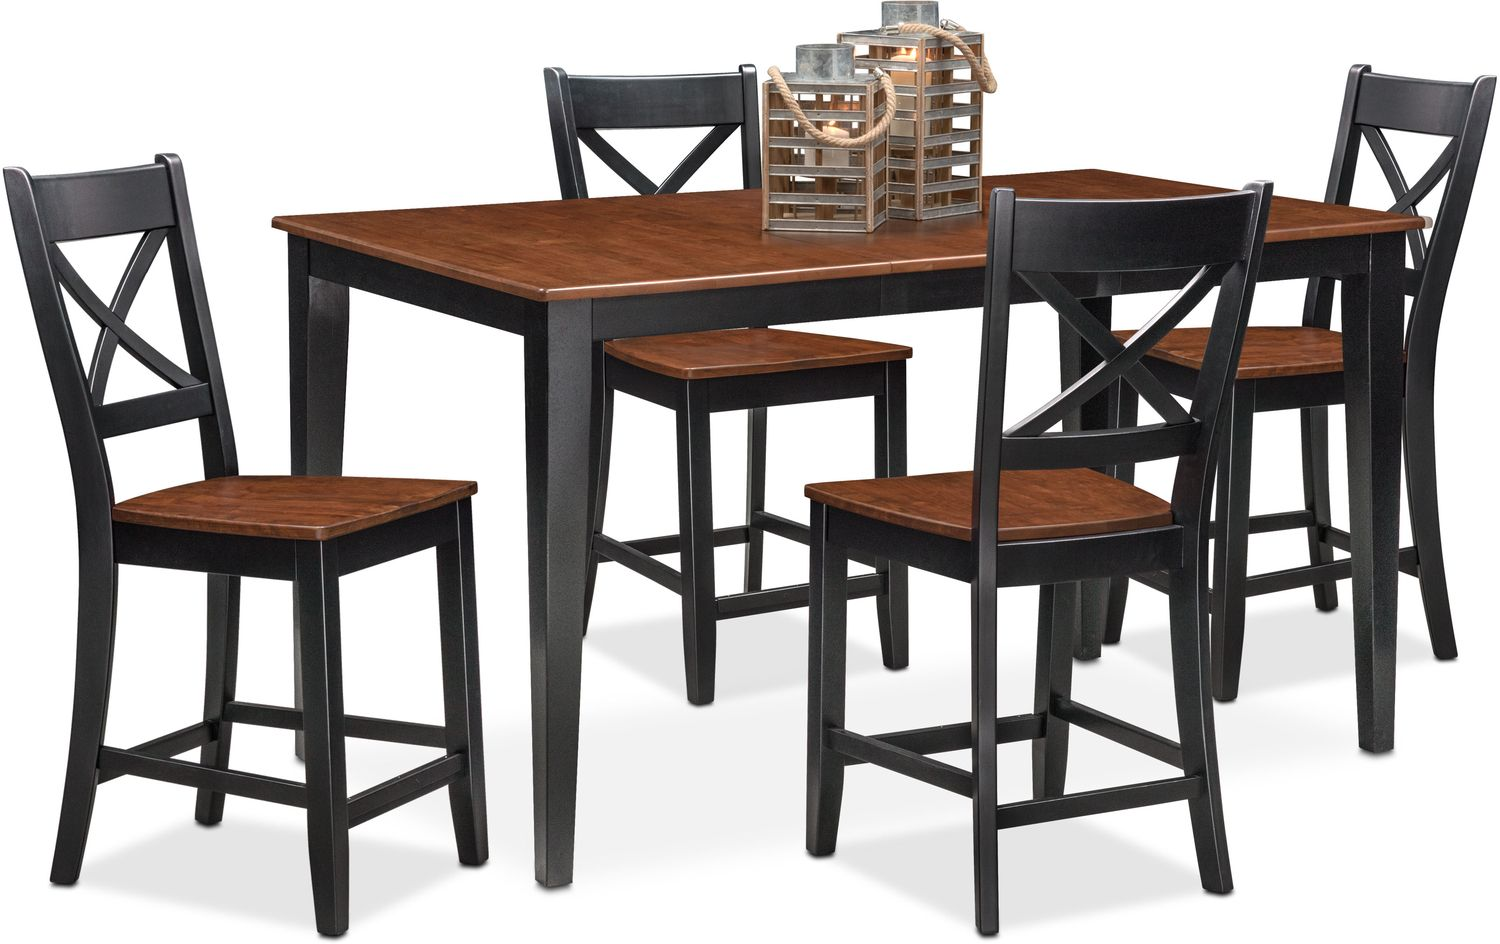 Dining Room Furniture   Nantucket Counter Height Table And 4 Side Chairs    Black And